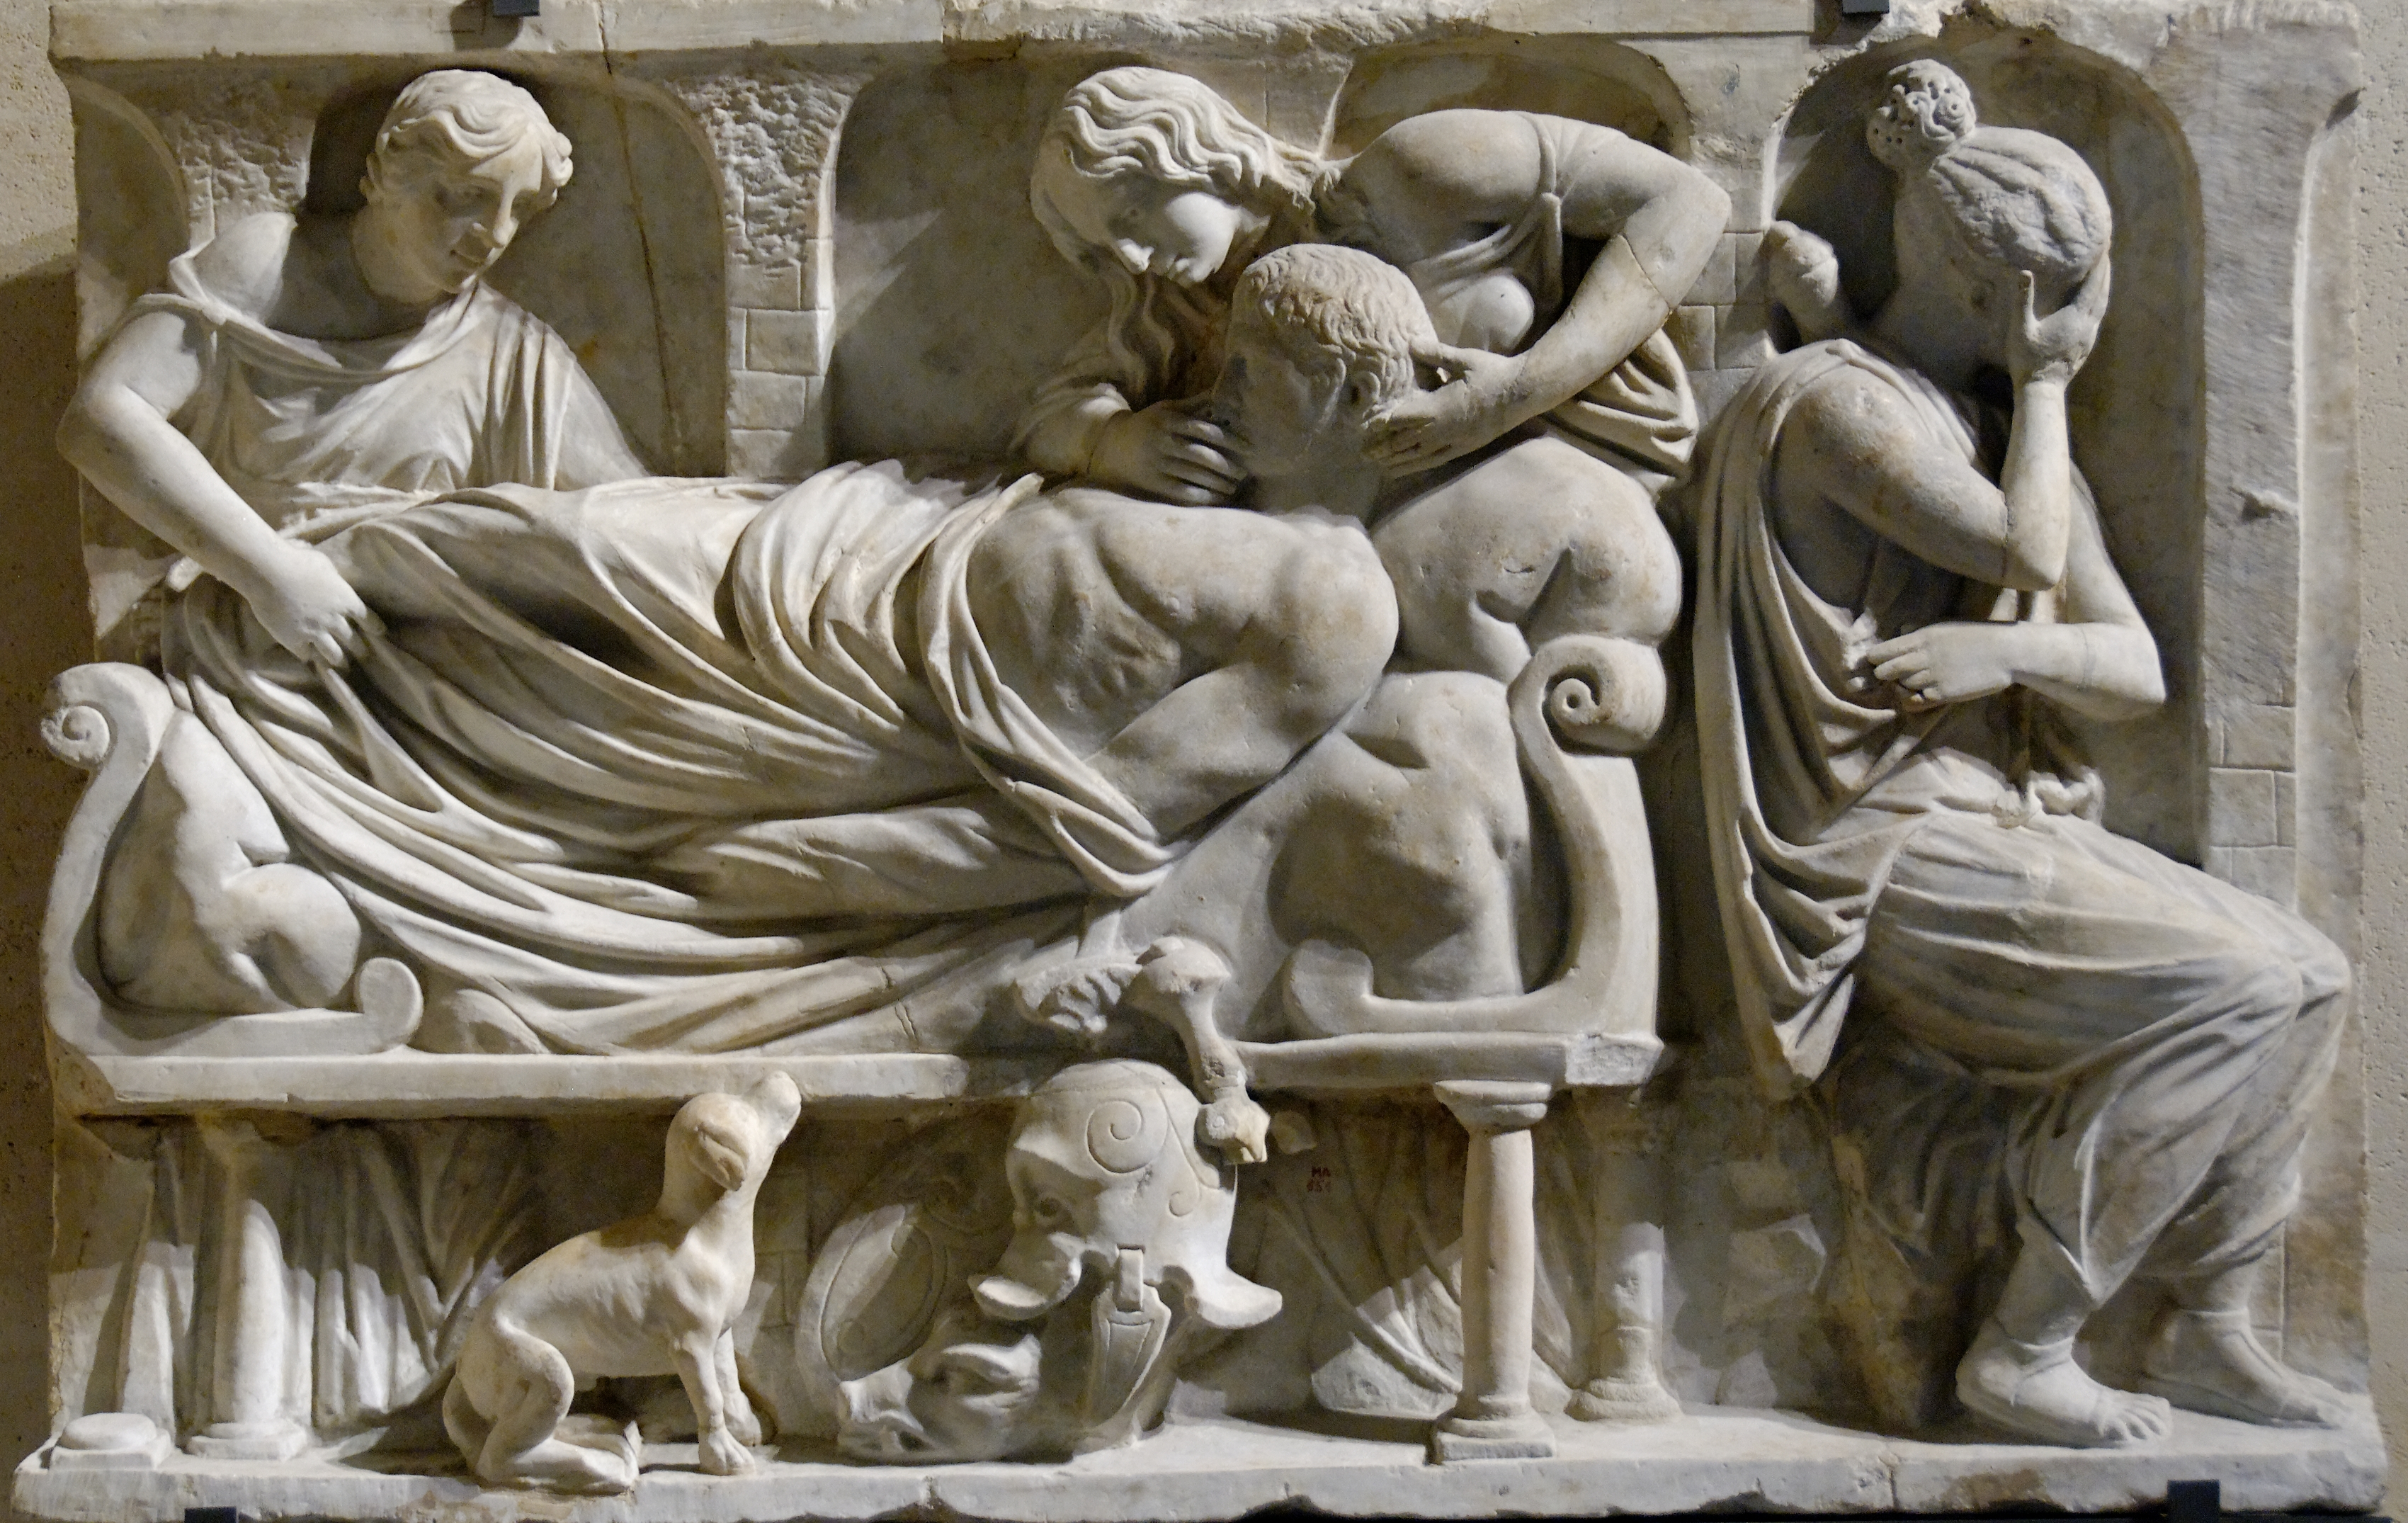 an analysis of the roman burial customs The period after the dissolution of roman empire and up to the year 1000 was an incredibly lawrence nees's early medieval art burial customs varied, some as.